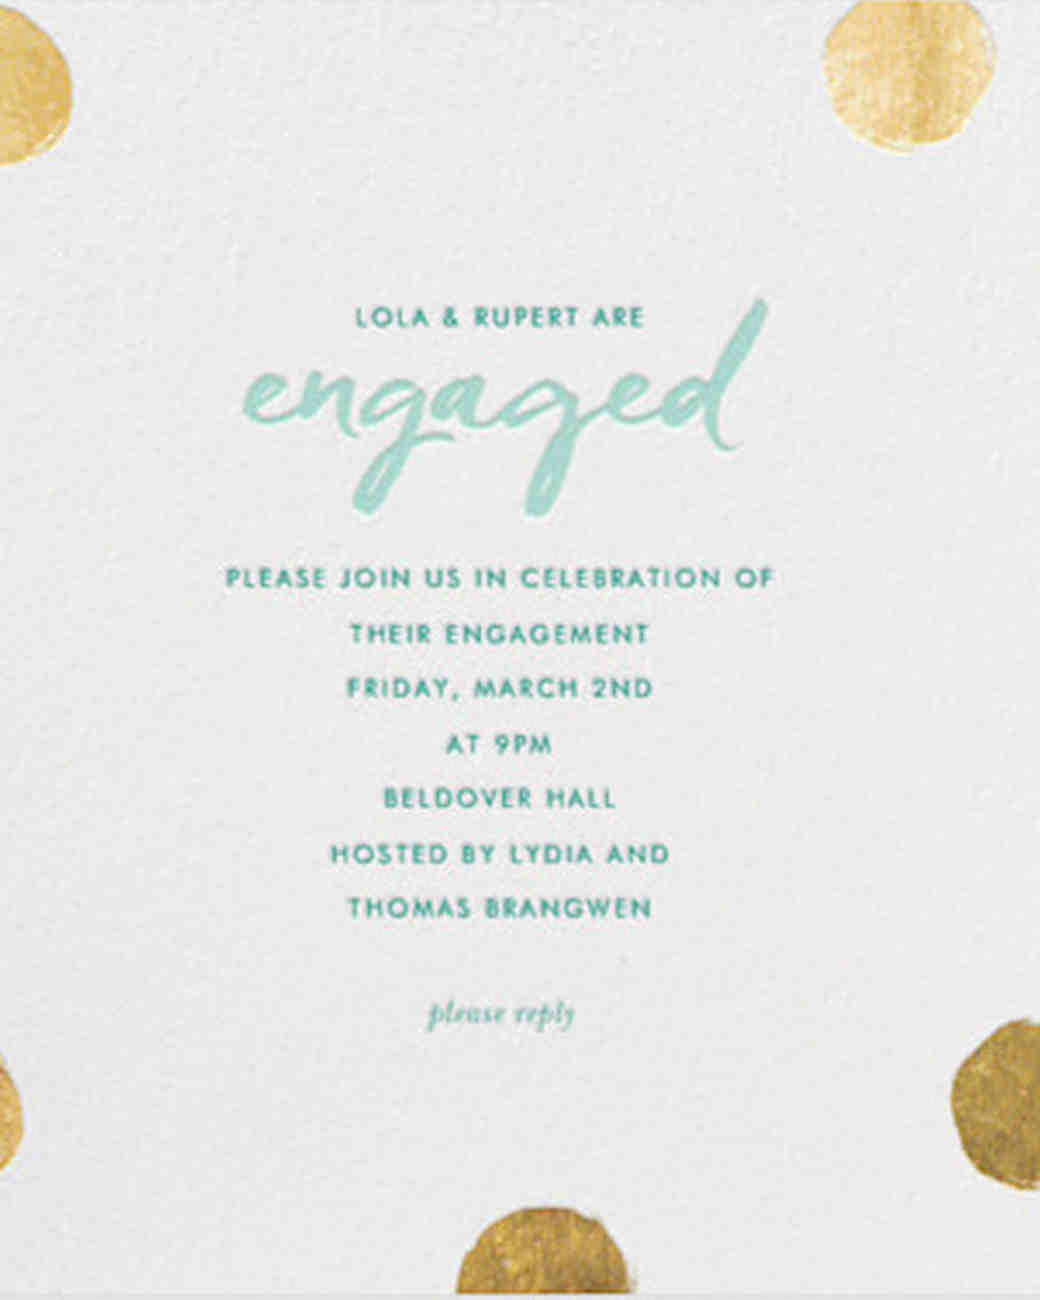 paperless-engagement-party-invitations-paperless-post-gold-dots-0416.jpg